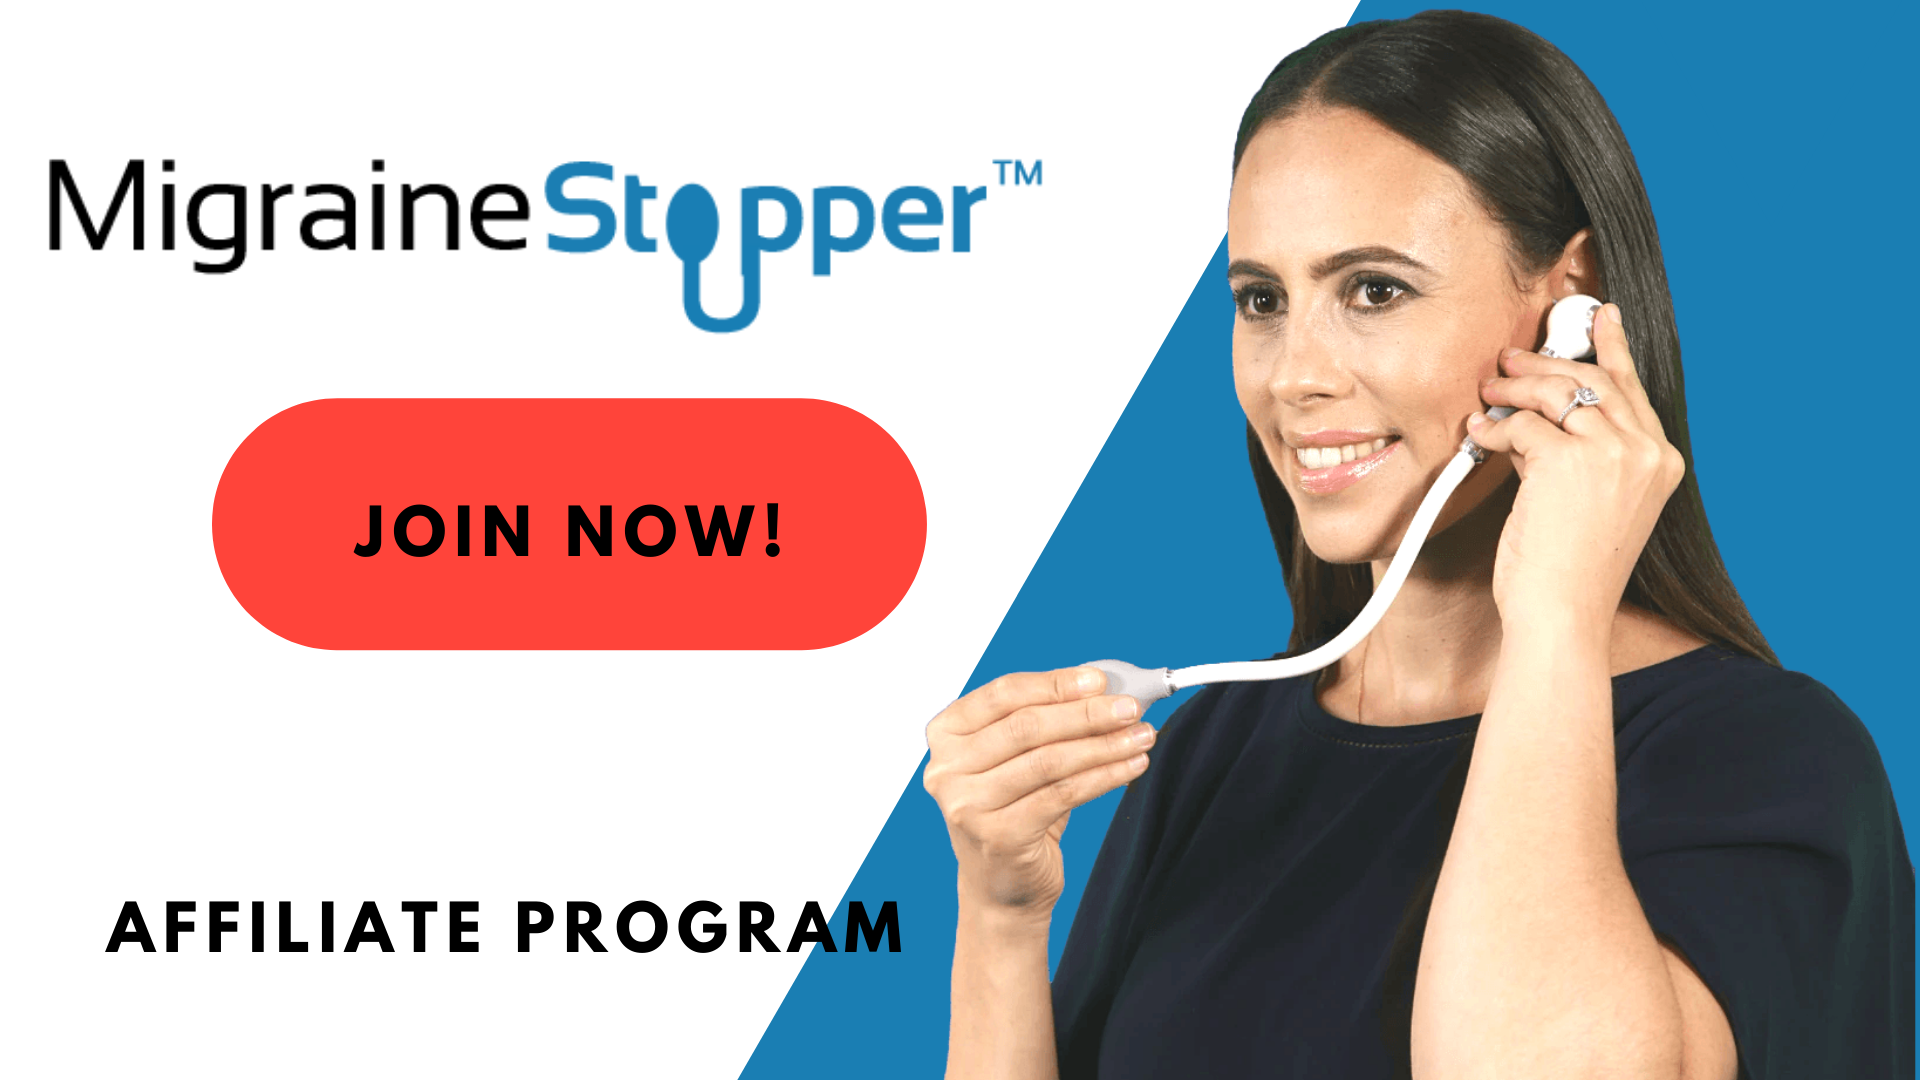 Migraine Stopper - Join Now!